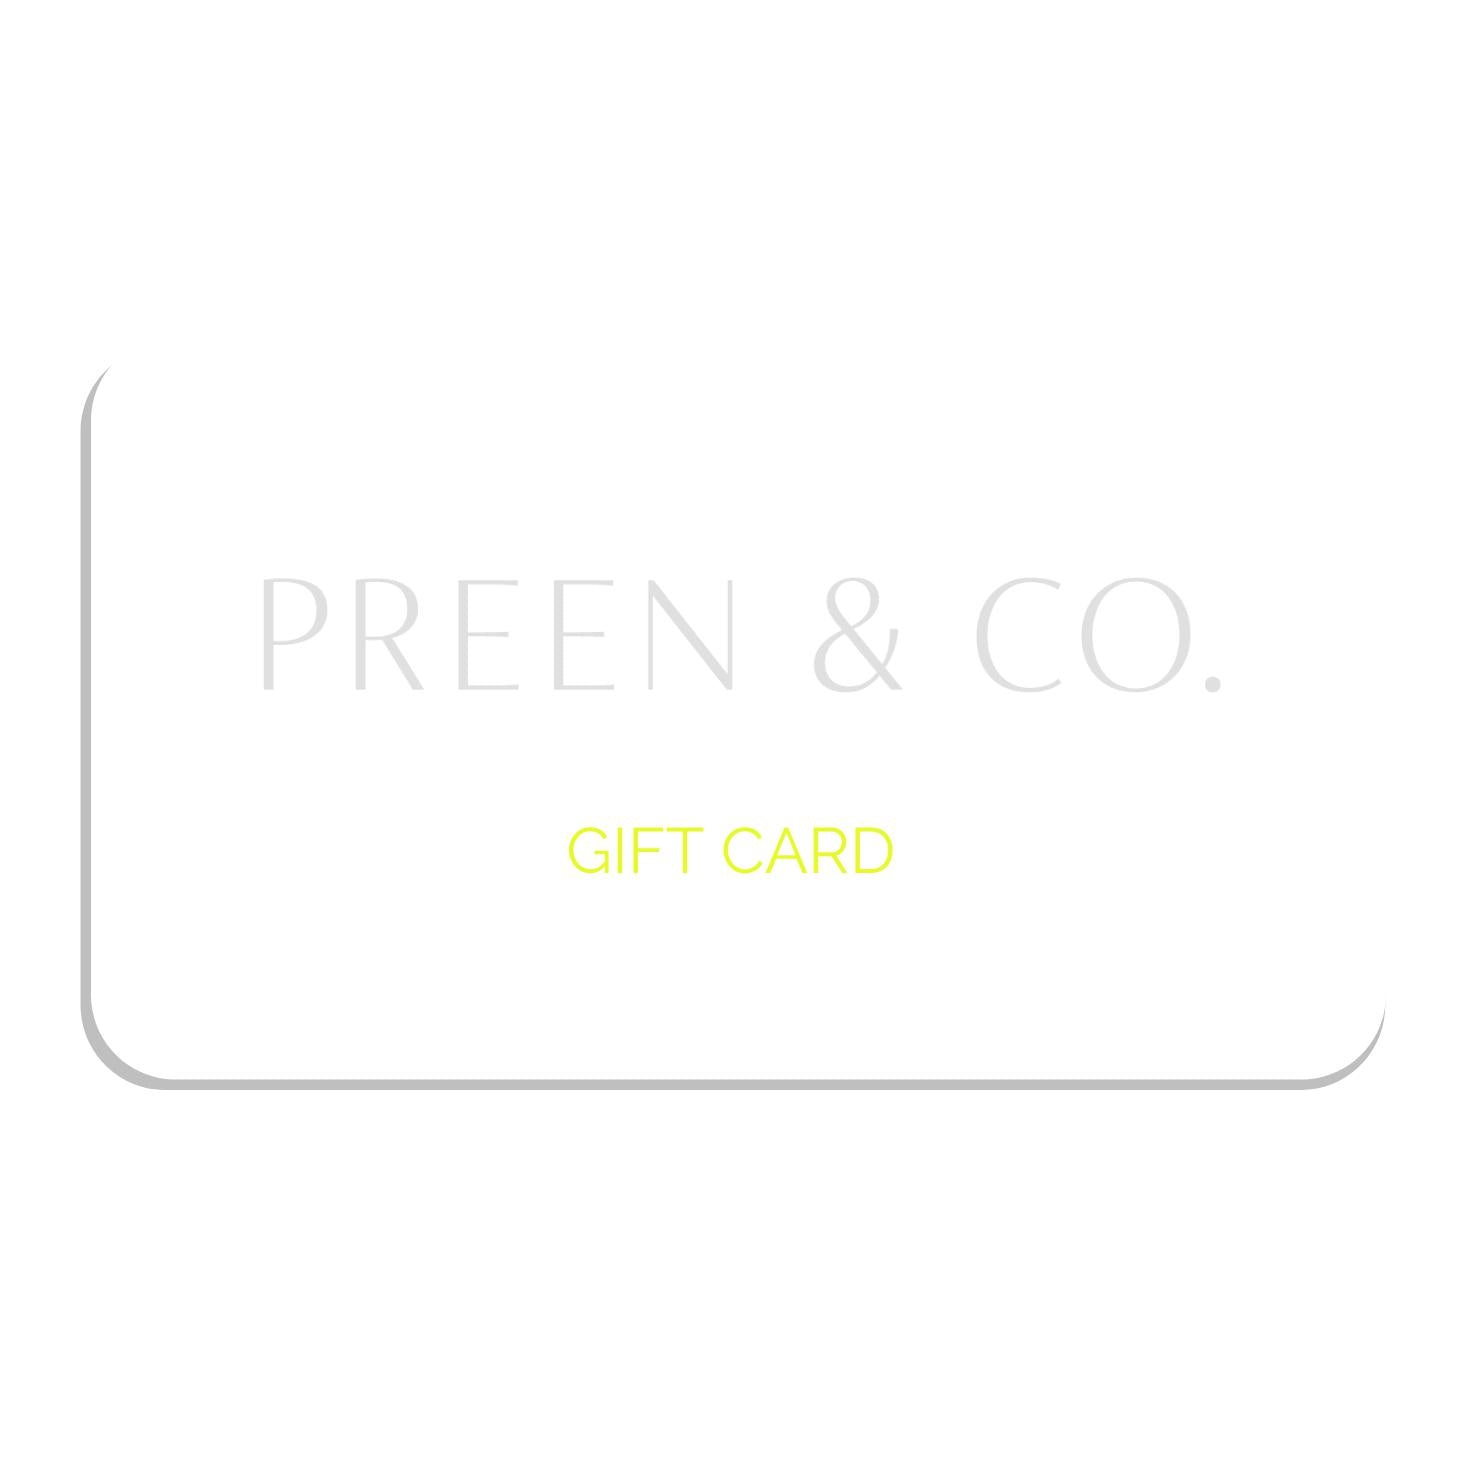 Digital Gift Card - PREEN&Co